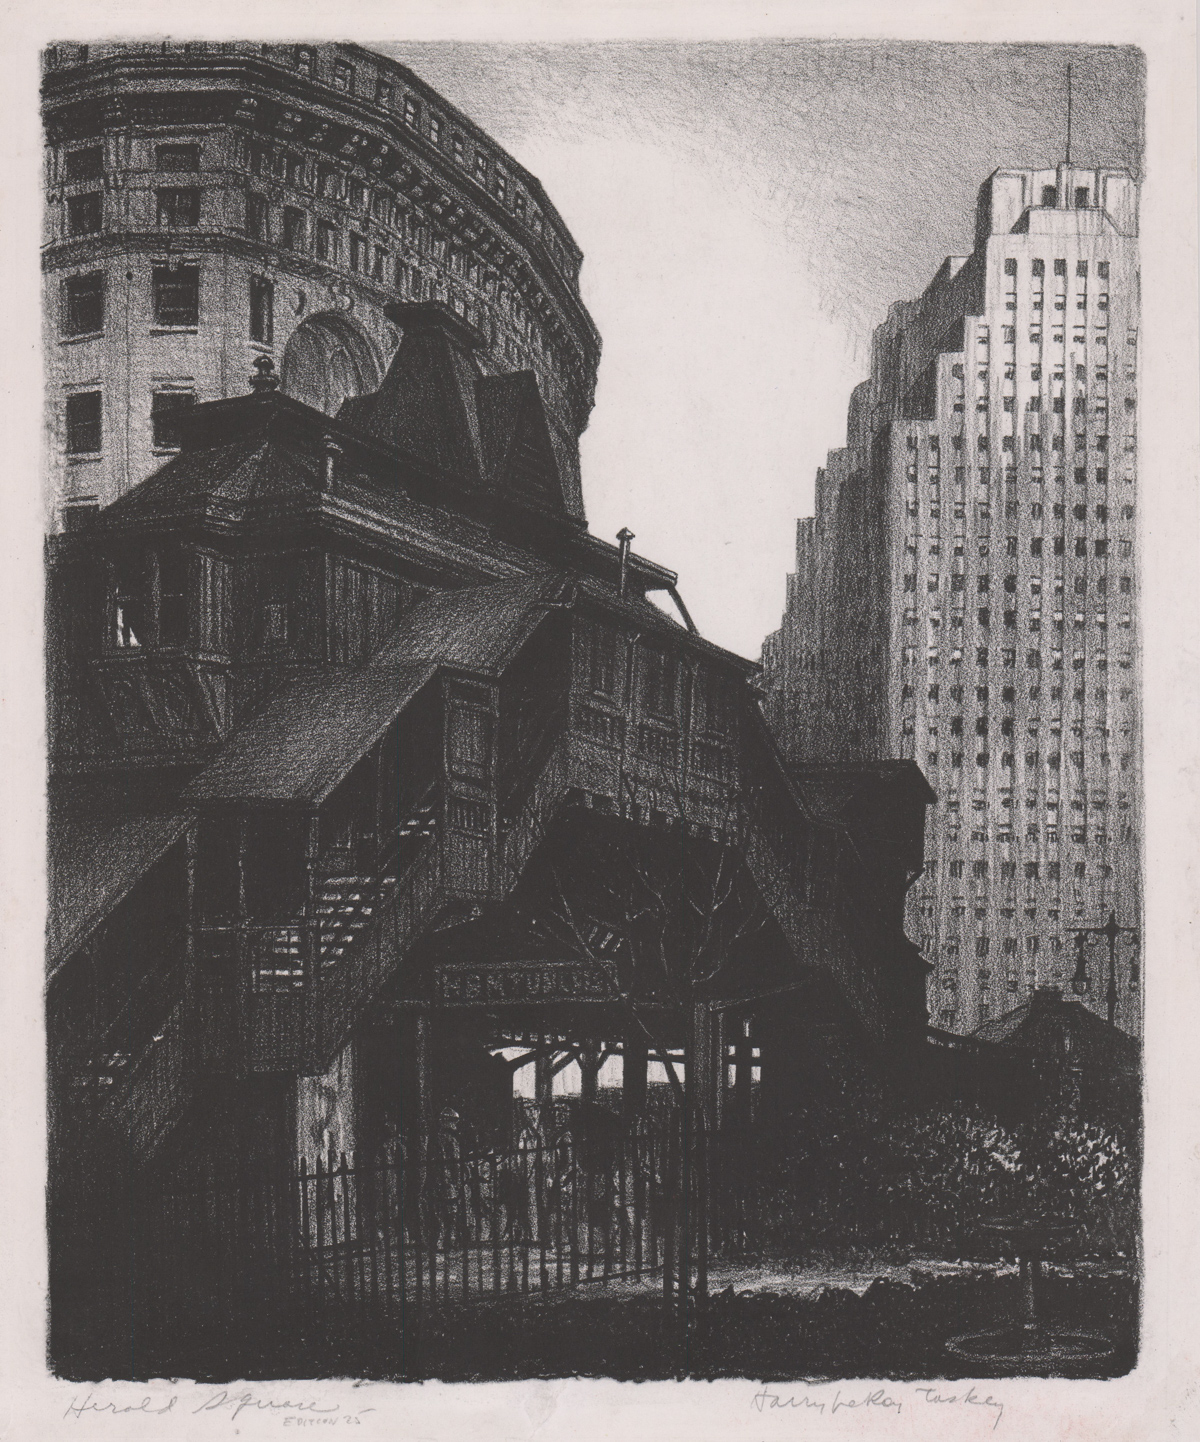 Harry LeRoy Taskey Lithograph [Harold Square, NYC]